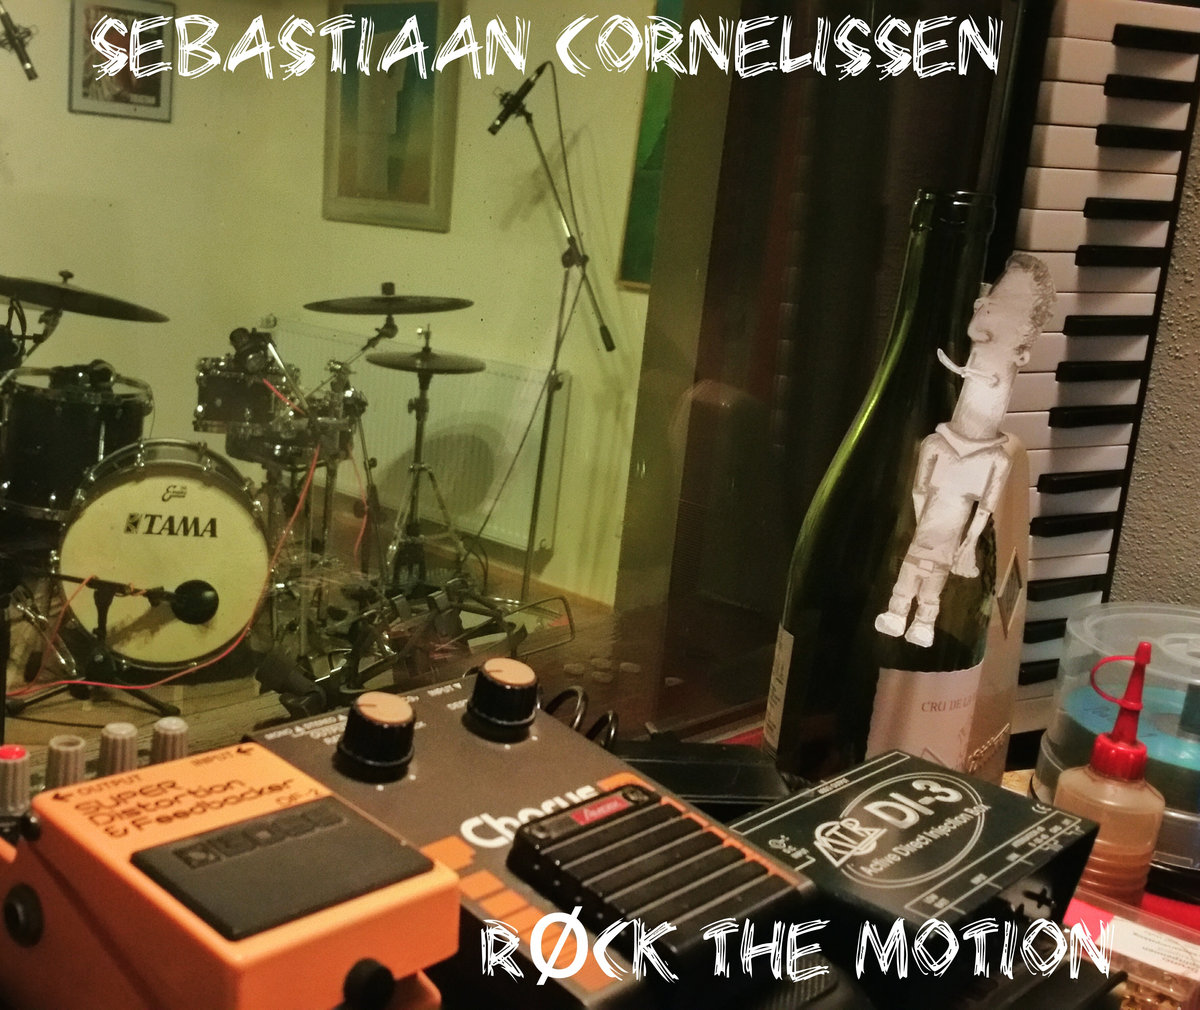 Sebastiaan Cornelissen upcoming album - Rock the Motion